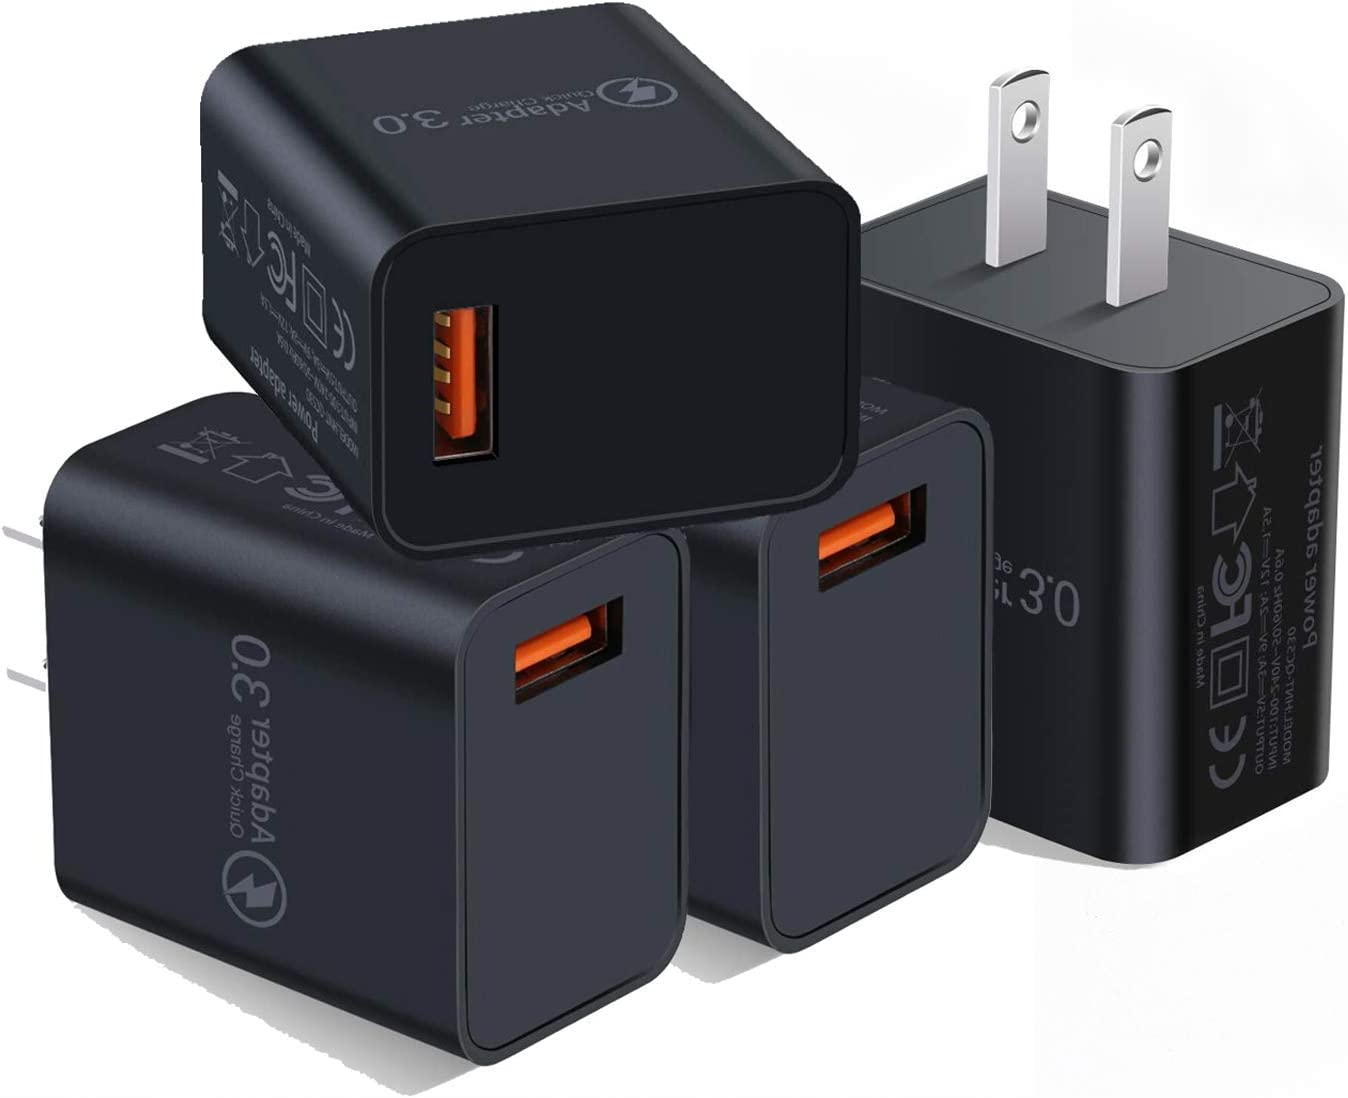 Quick Charge 3.0 Wall Charger, 4-Pack 18W QC 3.0 USB Charger Adapter Fast Charging Block Compatible Wireless Charger Compatible with Samsung Galaxy S10 S9 S8 Plus S7 S6 Edge Note 9, LG, Kindle, Tablet